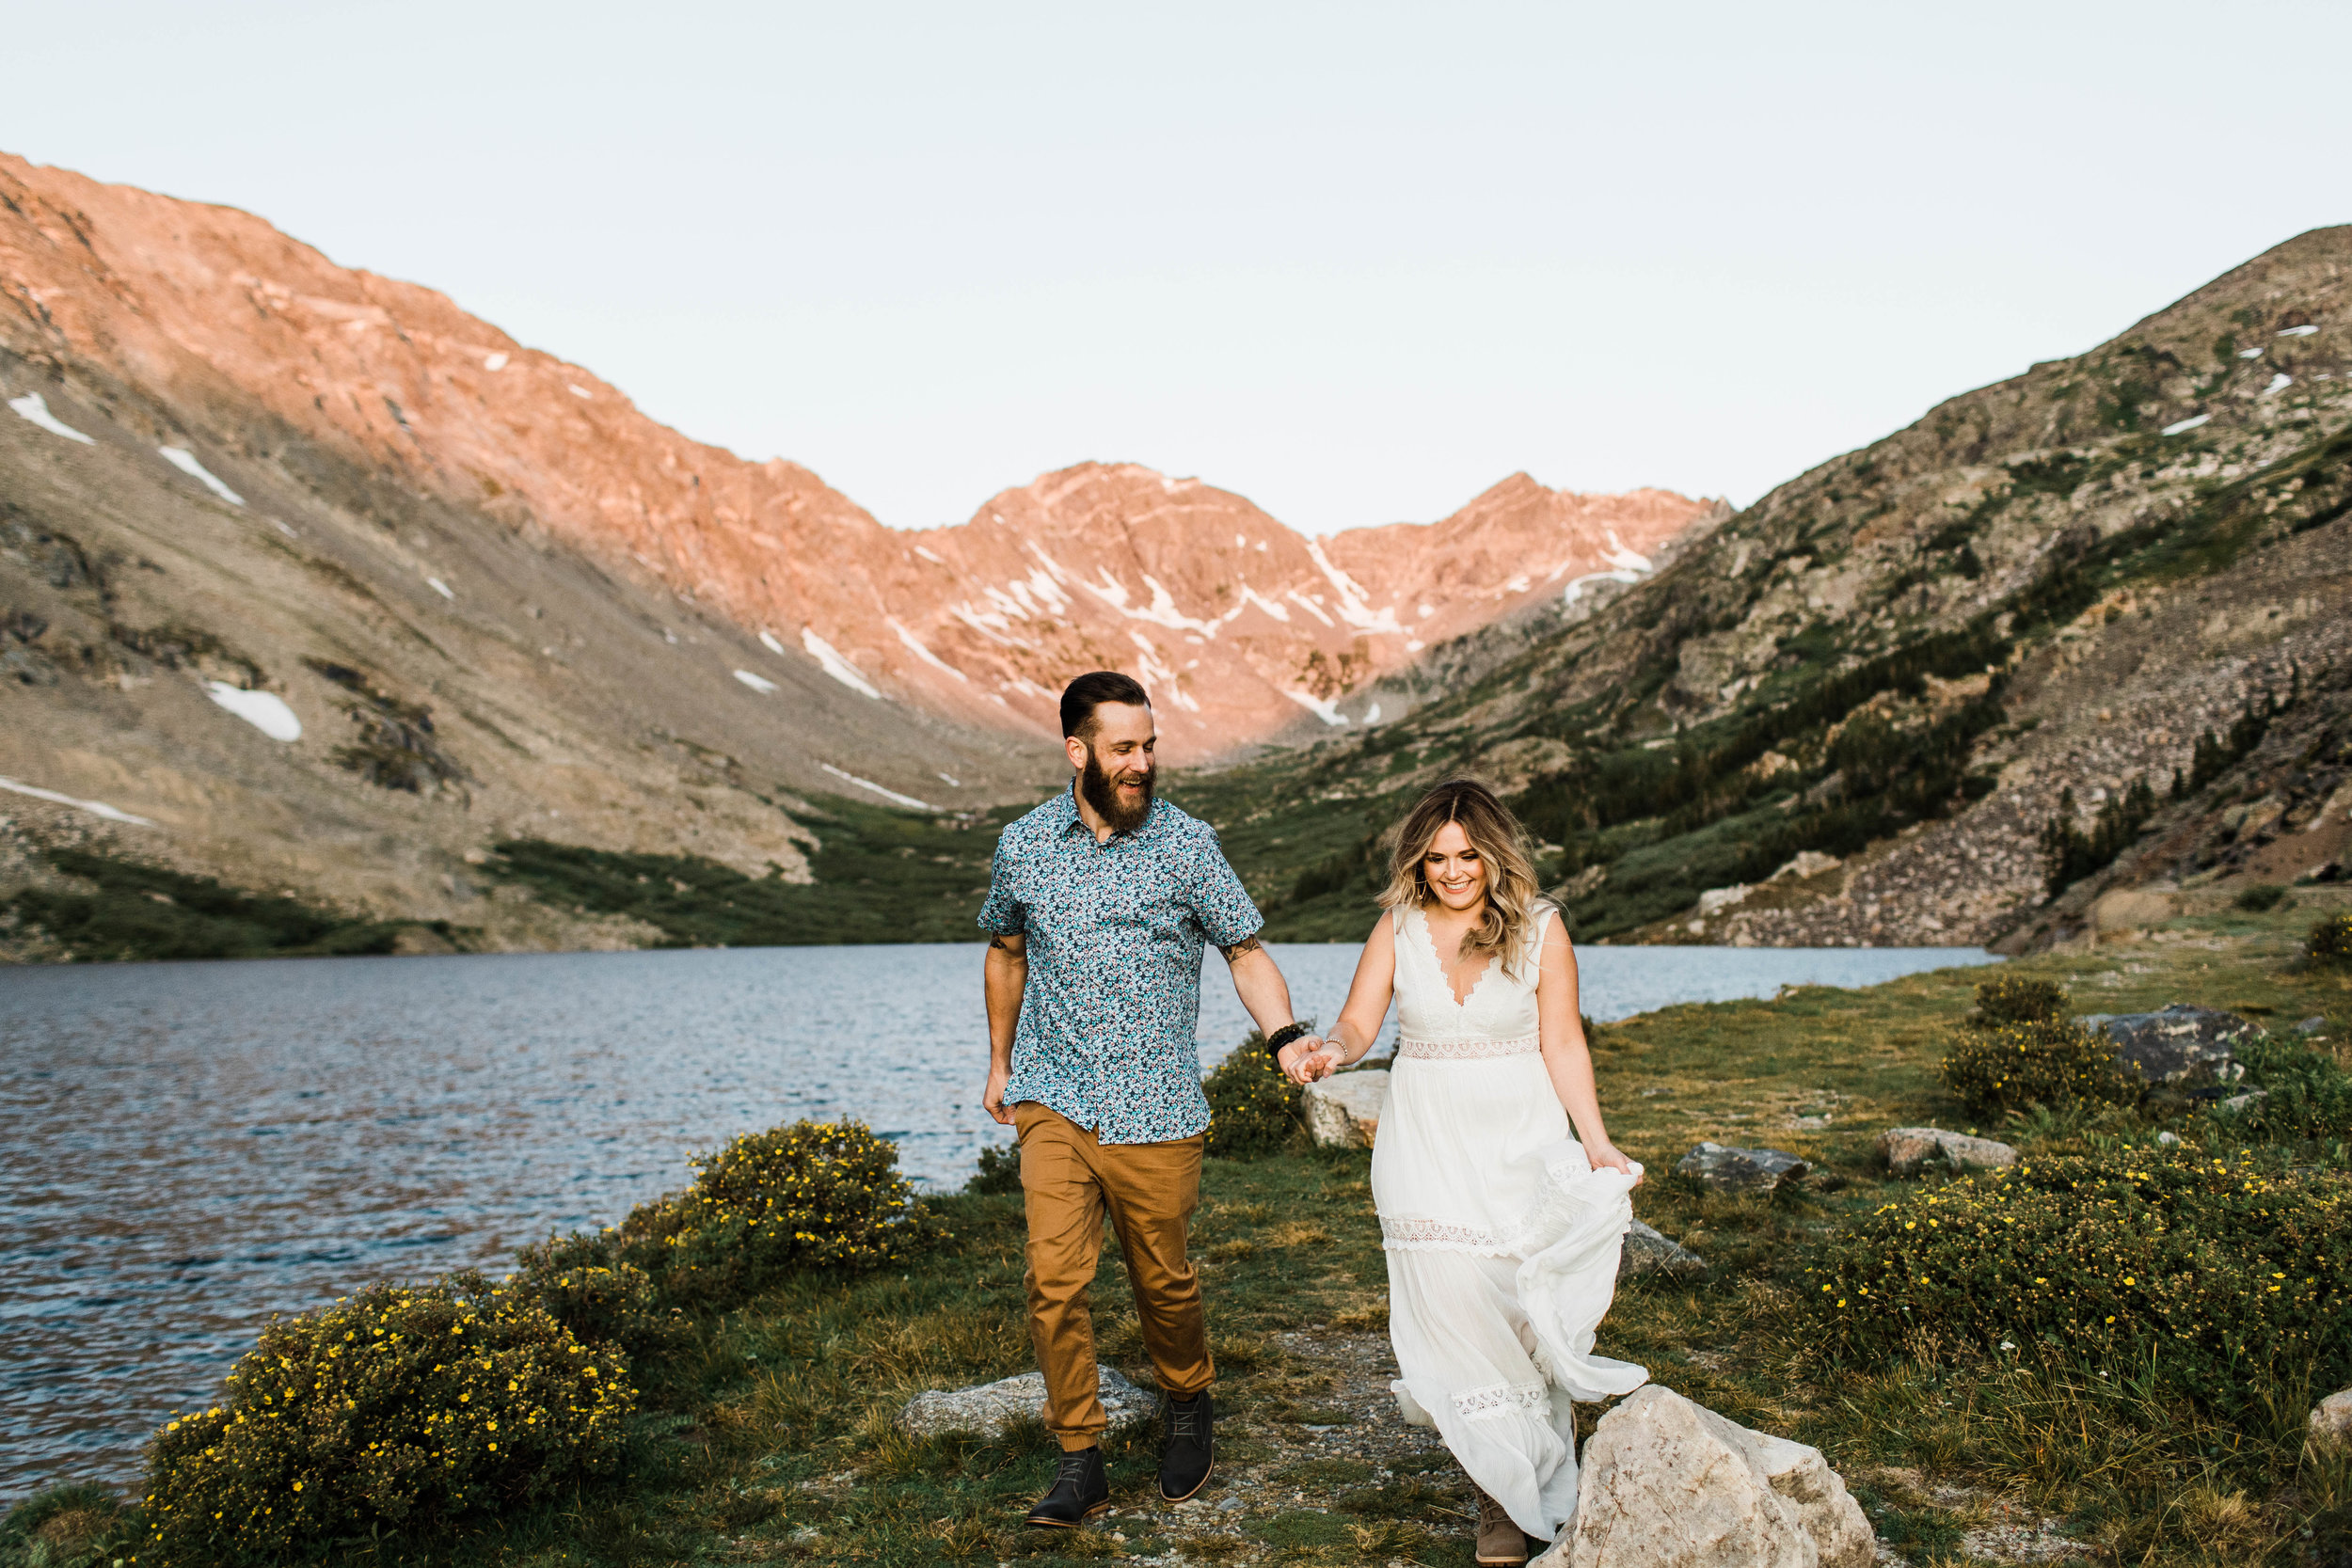 Engaged couple running together in the mountains during their Breckenridge adventure engagement photos at an alpine lake | best Breckenridge elopement and adventure wedding photographers